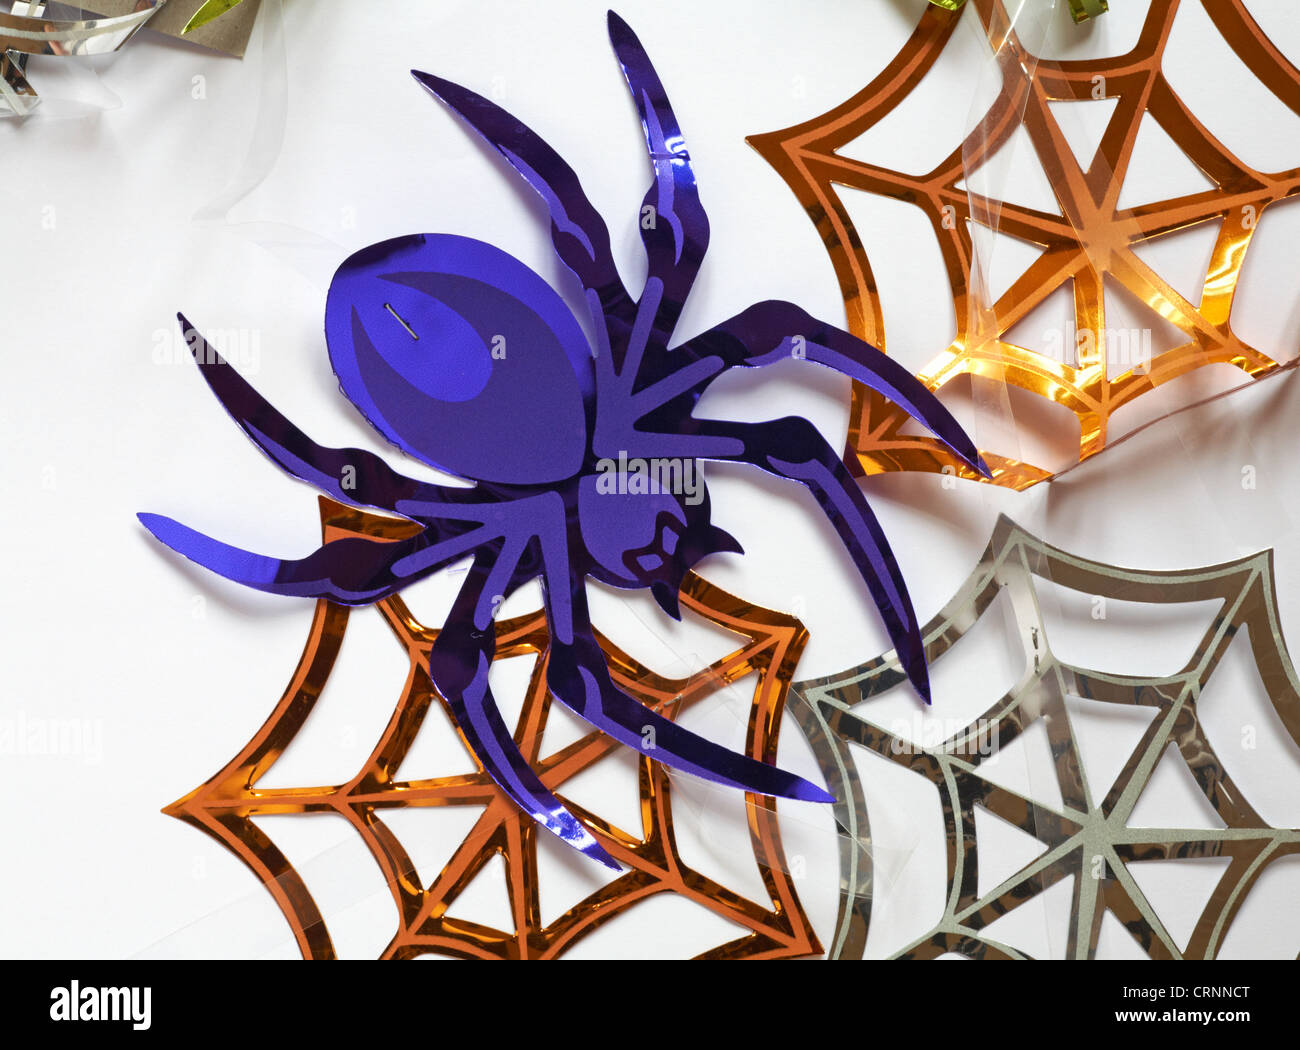 shiny spider and spider webs decorations for halloween set on white background - Stock Image